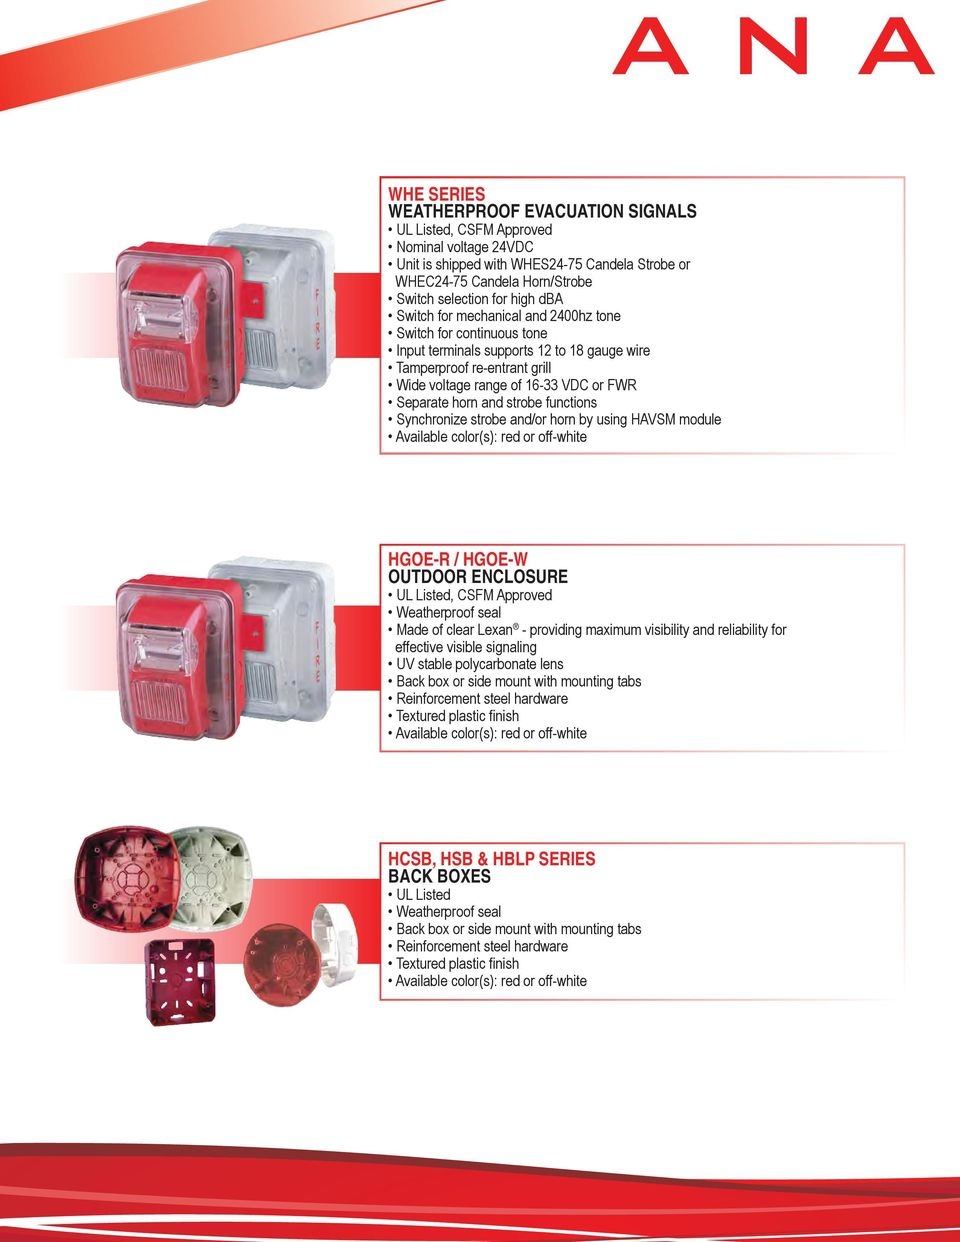 Synchronize strobe and/or horn by using HAVSM module Available color(s): red or off-white HGOE-R / HGOE-W OUTDOOR ENCLOSURE Weatherproof seal Made of clear Lexan - providing maximum visibility and